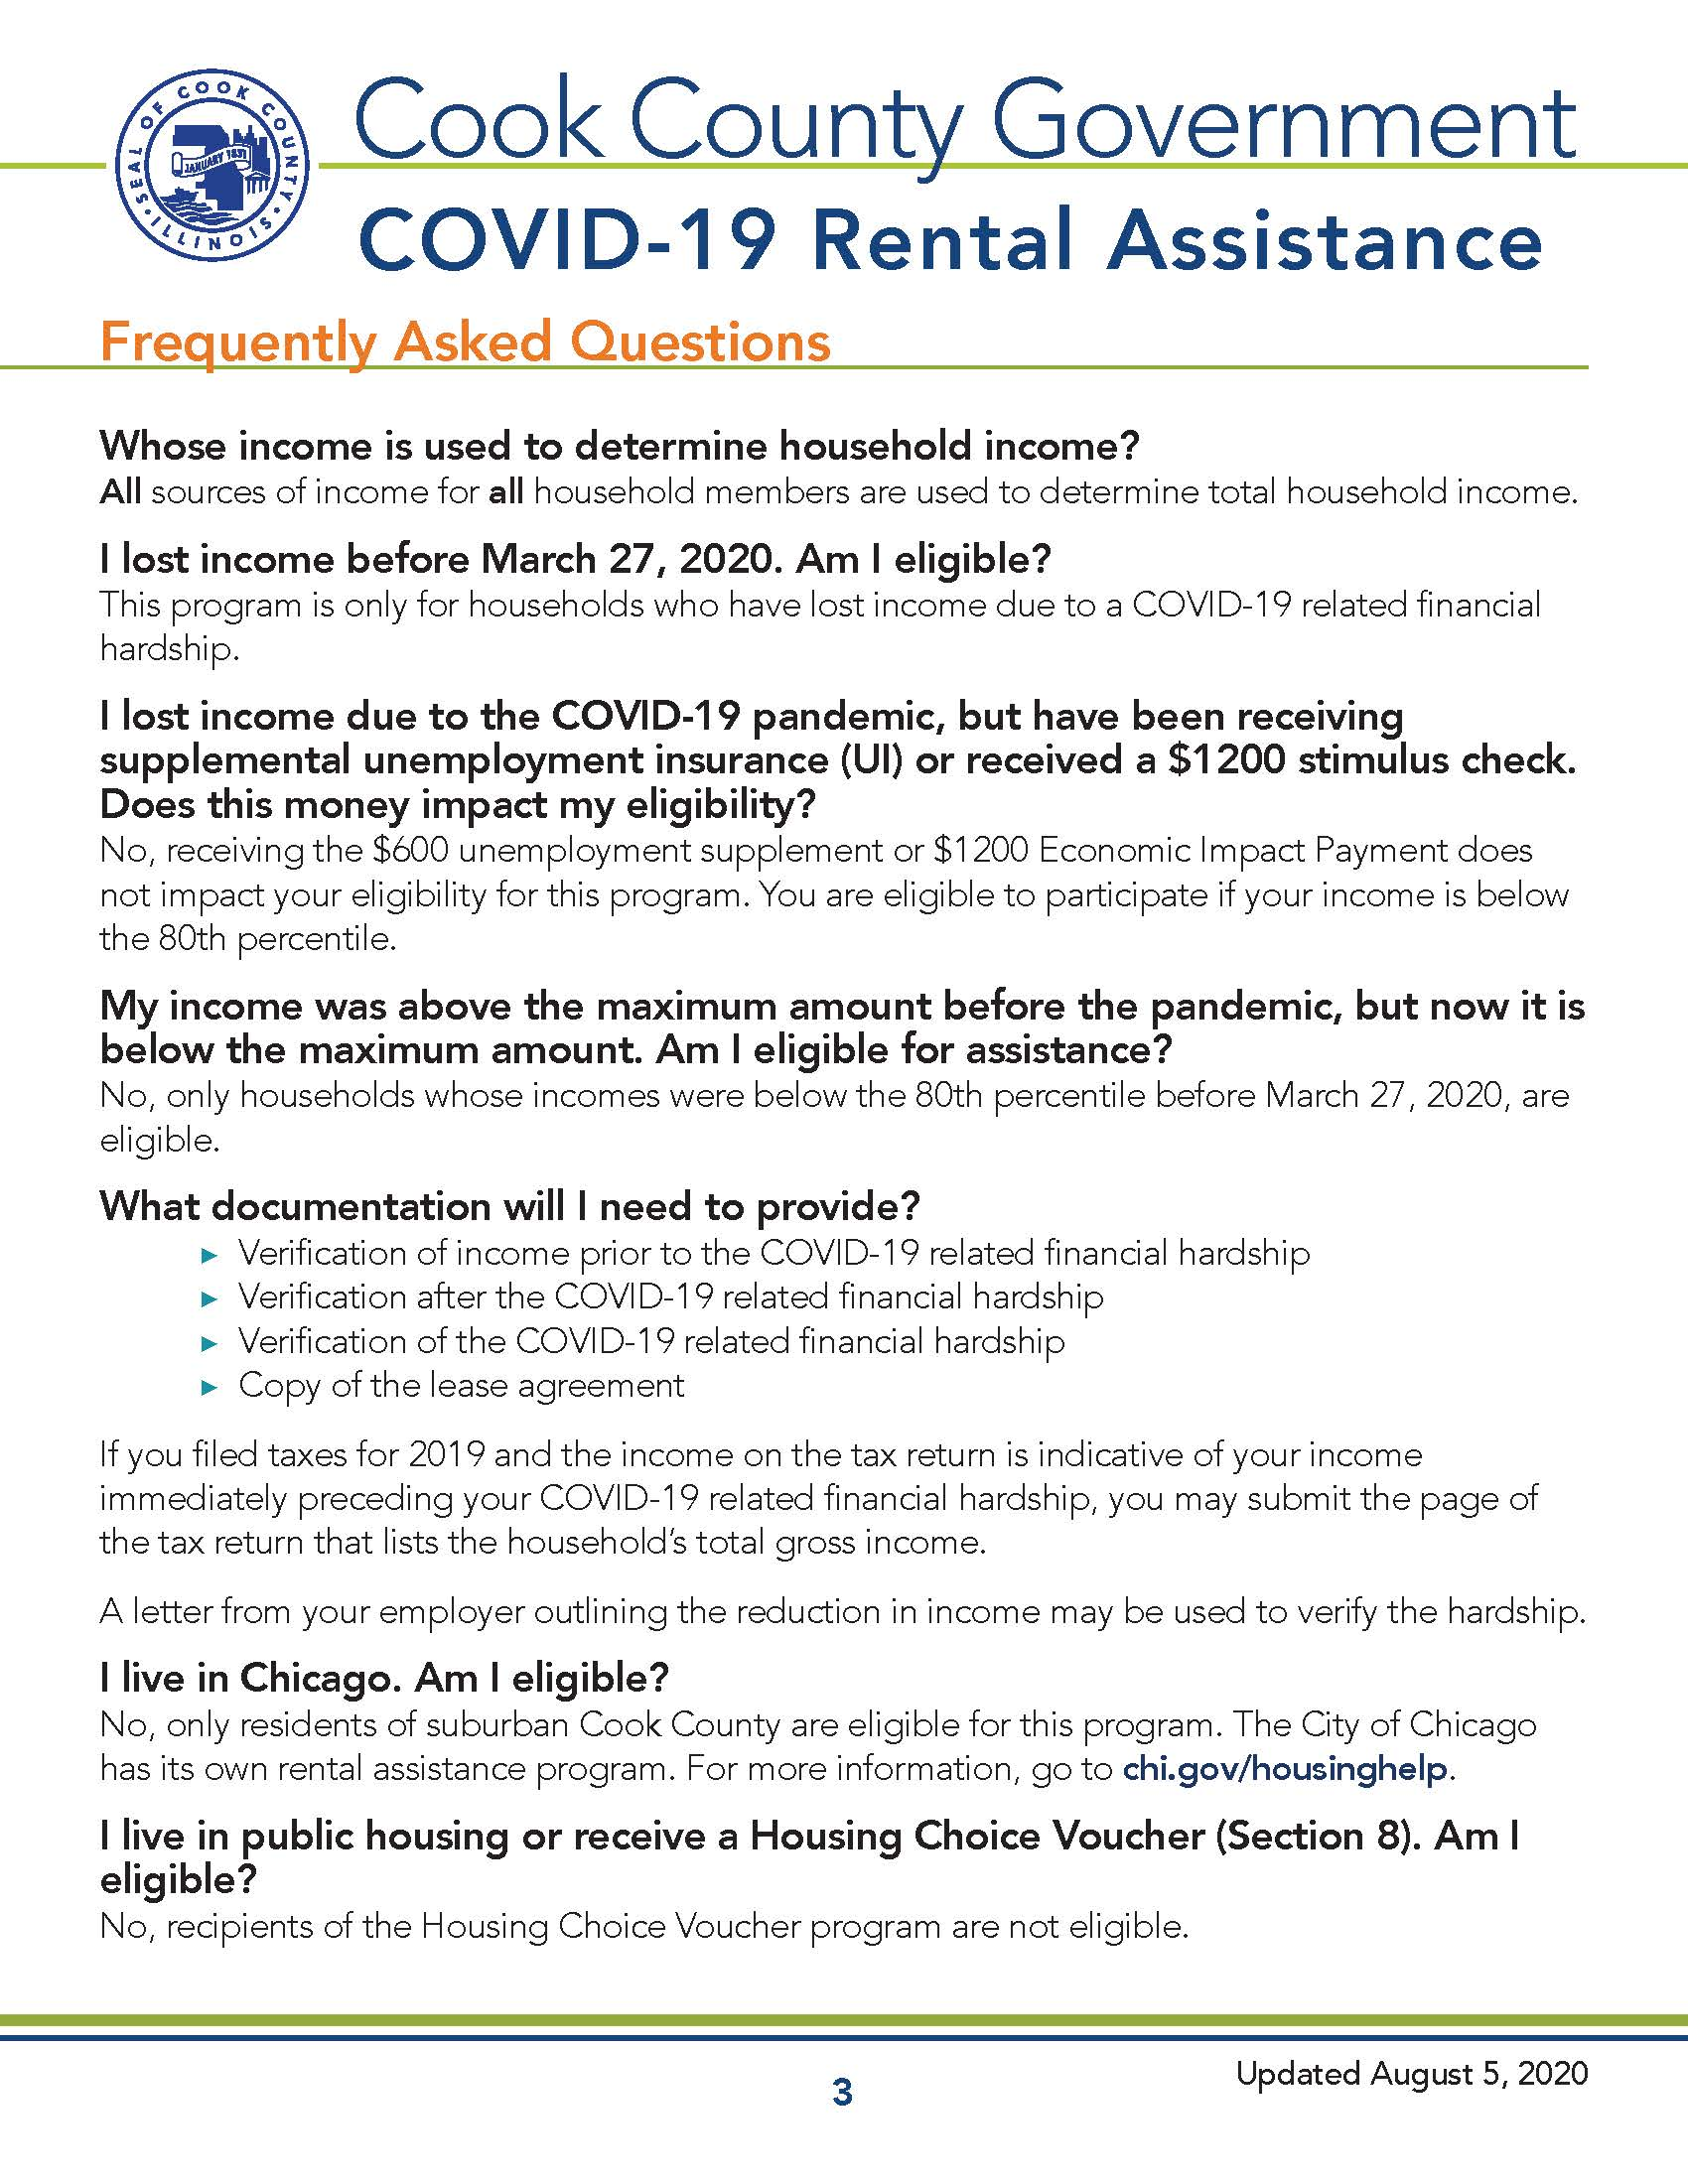 Cook County COVID-19 Recovery - Rental Assistance Overview Page 3